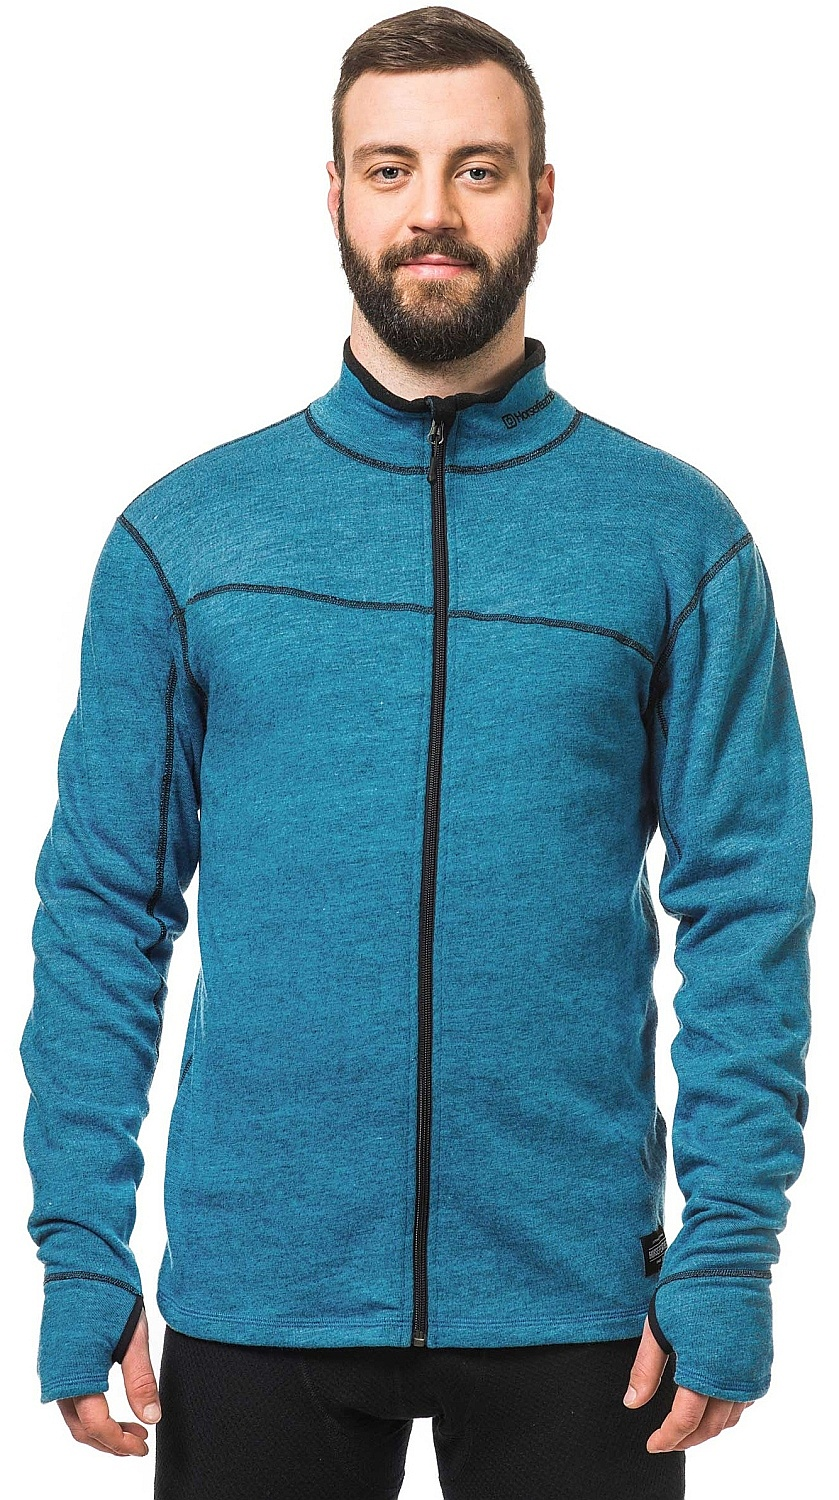 mikina Horsefeathers Sloane Zip - Heather Blue